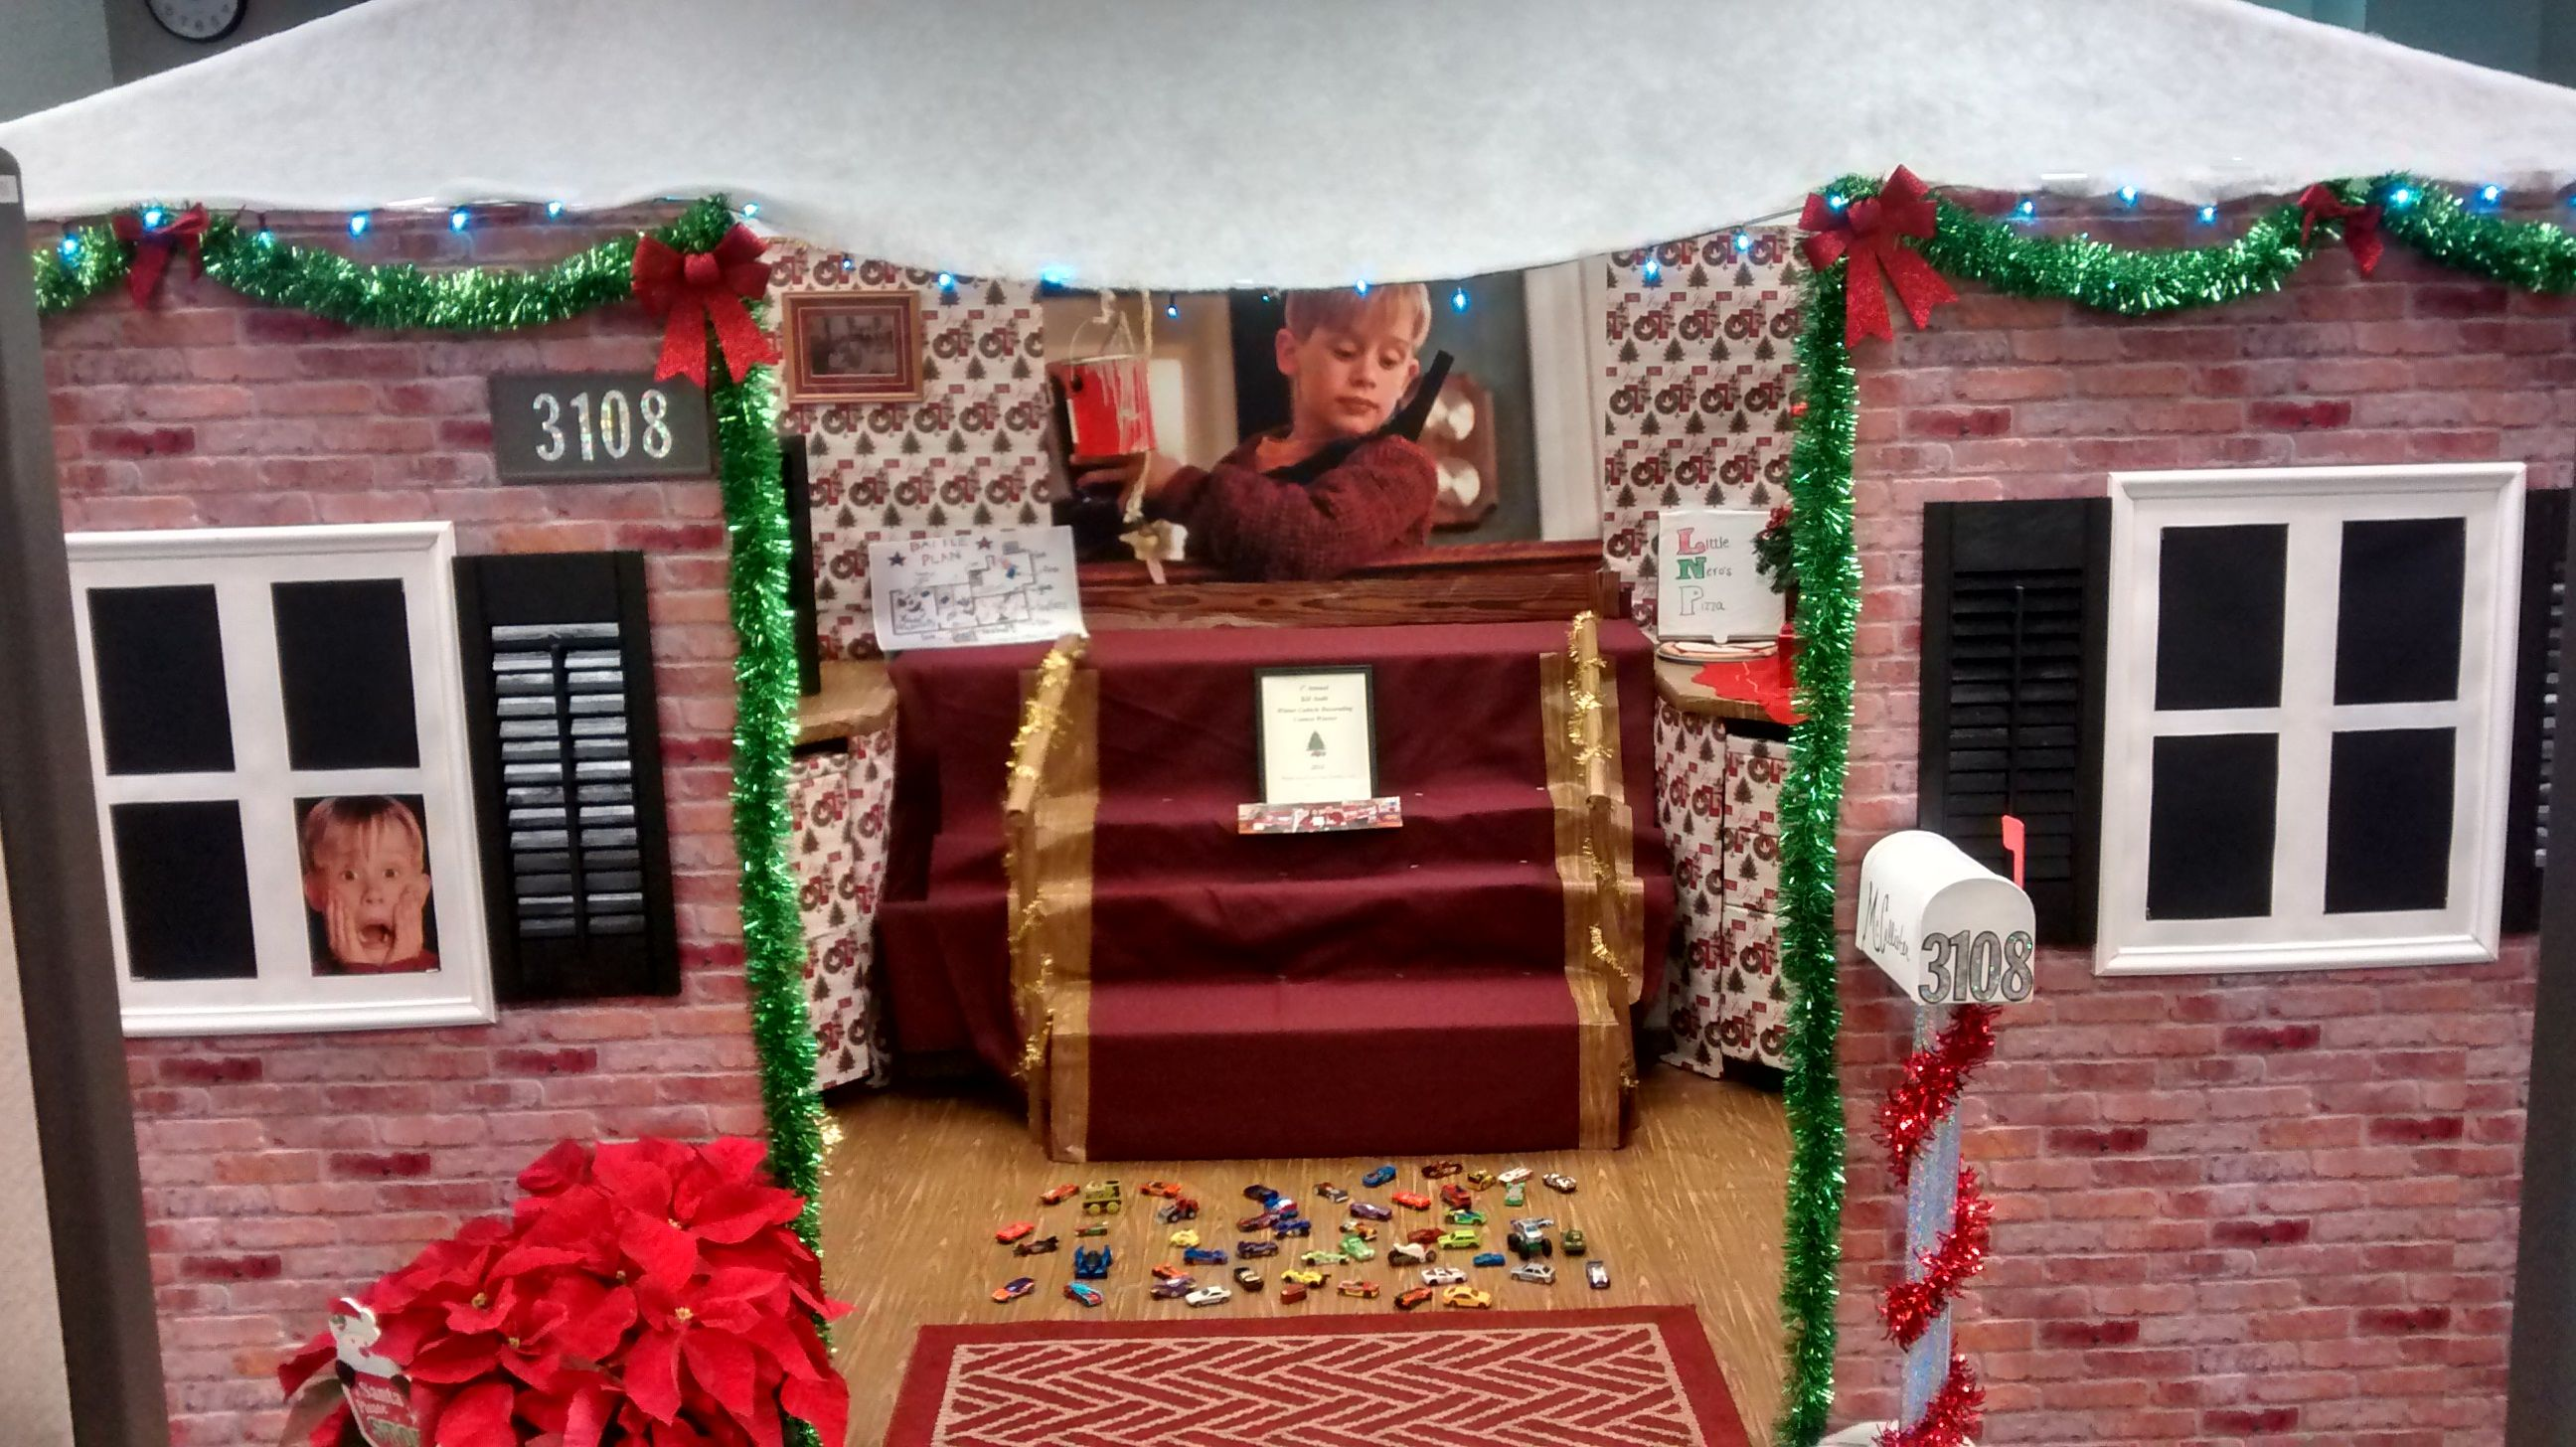 Home Alone Cubicle Front Side Christmas Door Decorating Contest Decorations Also Projects Rh Br